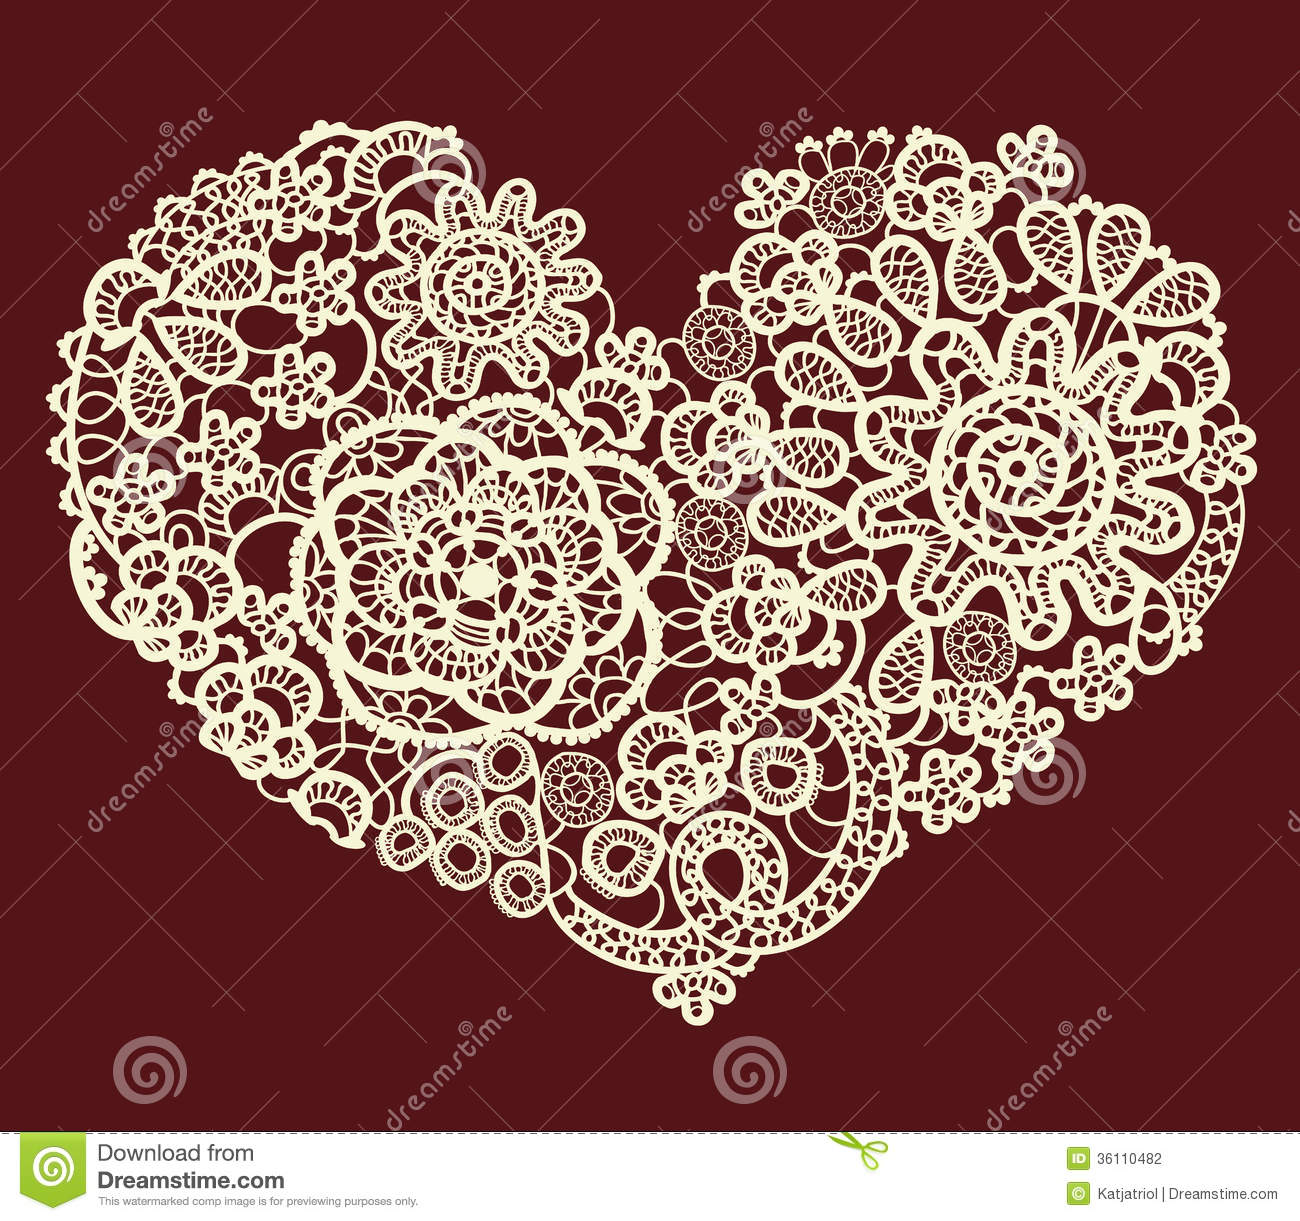 Vector vintage lace heart stock vector. Illustration of ...